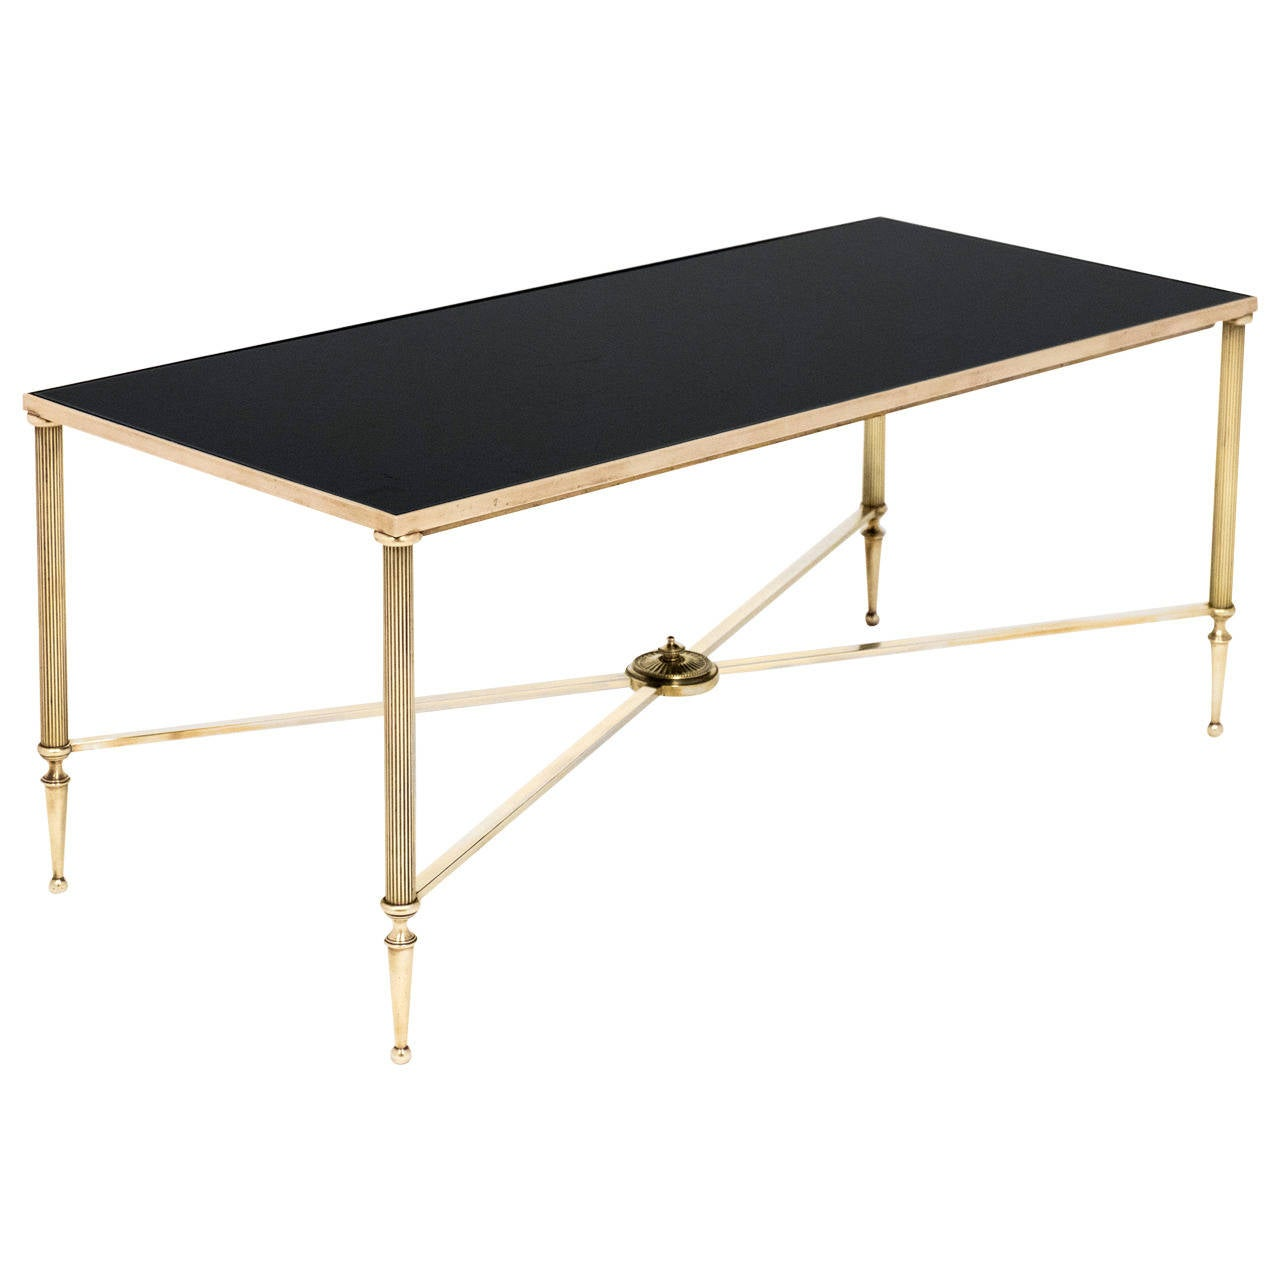 French Vintage Black Glass And Brass Coffee Table At 1stdibs